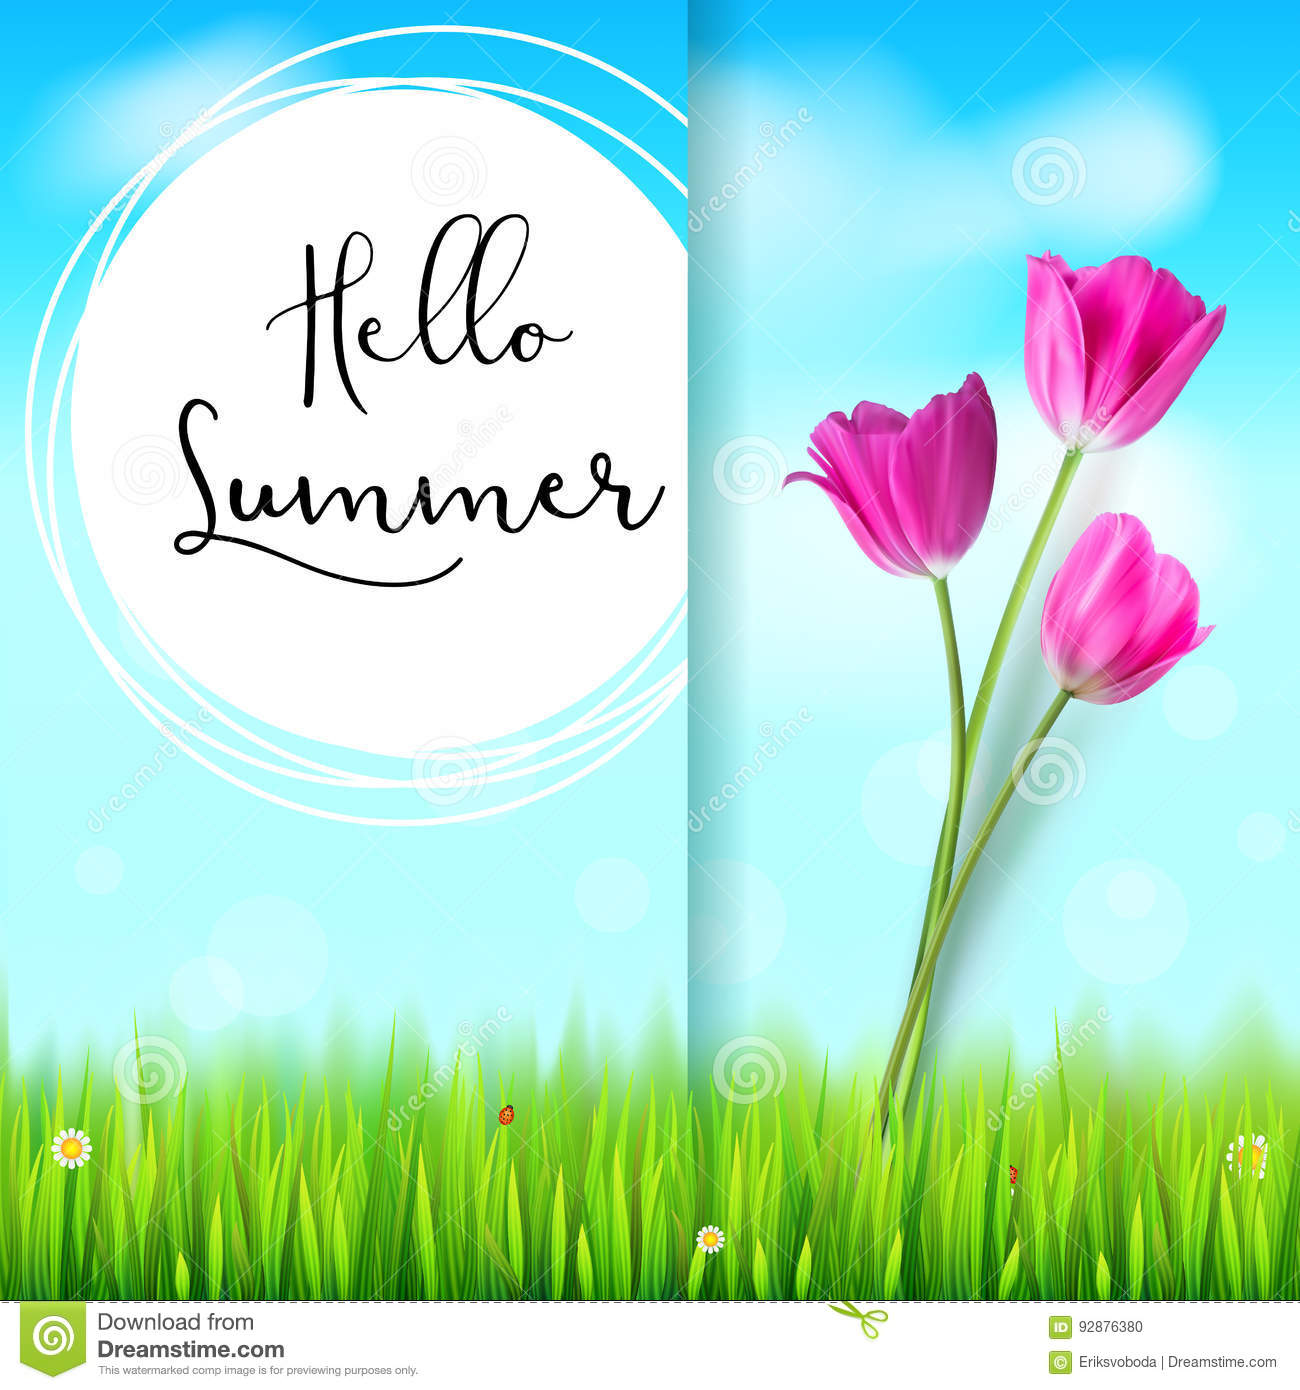 Delightful Hello Summer, Post Card. Pink Tulips On The Blue Summer Sky Backdrop. Green  Grass And White Clouds. Hand Drawn Design